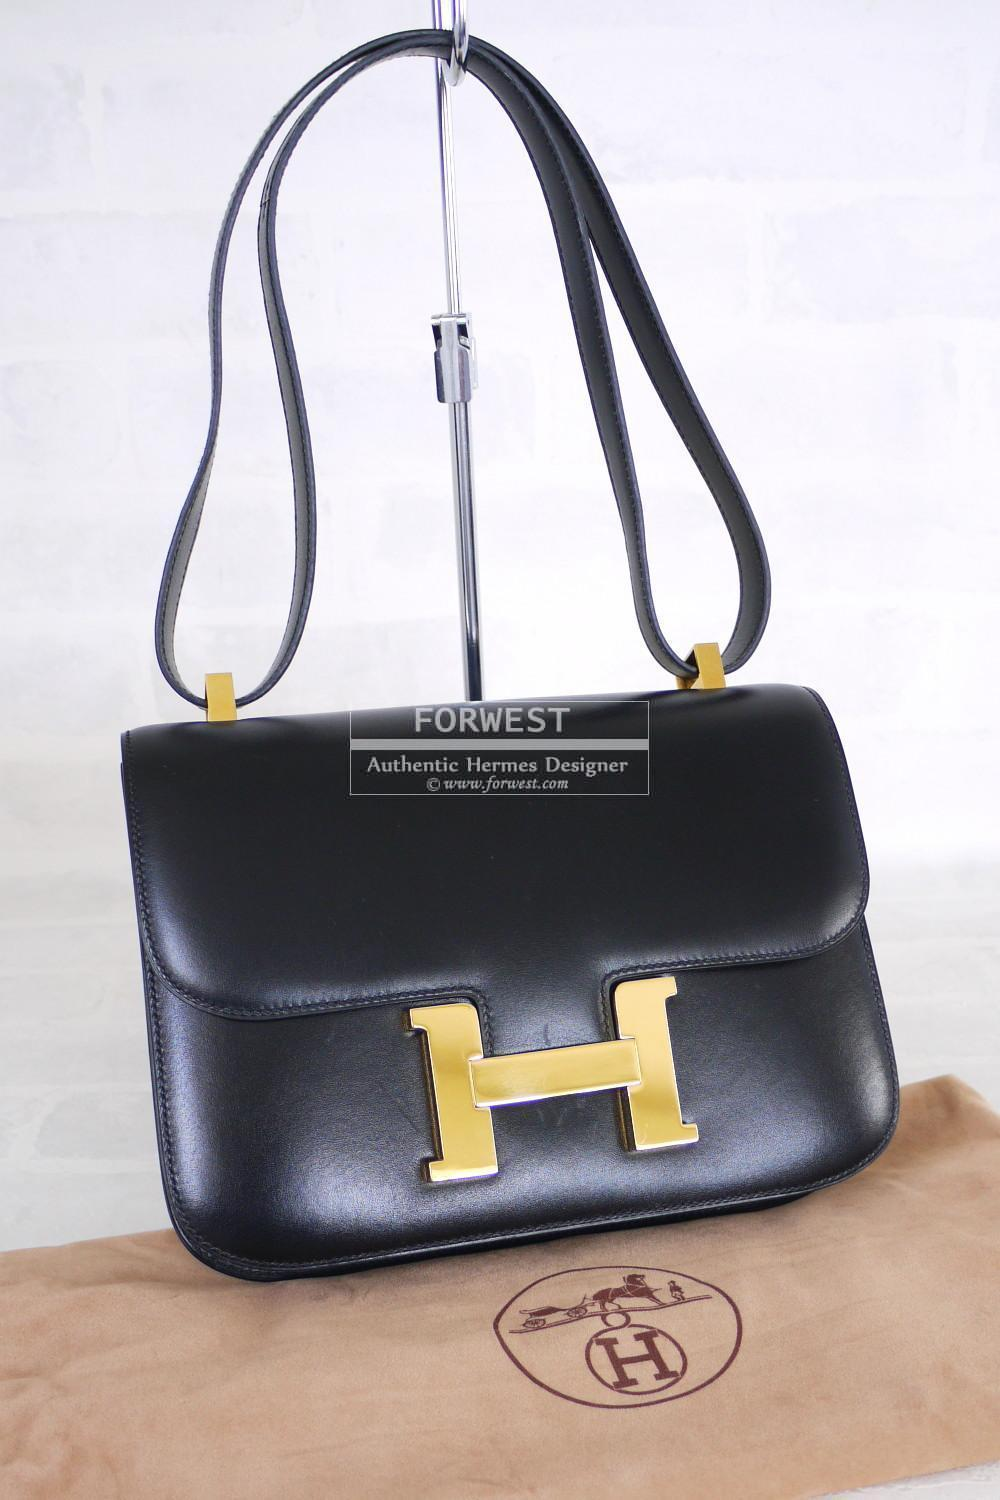 h hermes bags - price of hermes constance bag